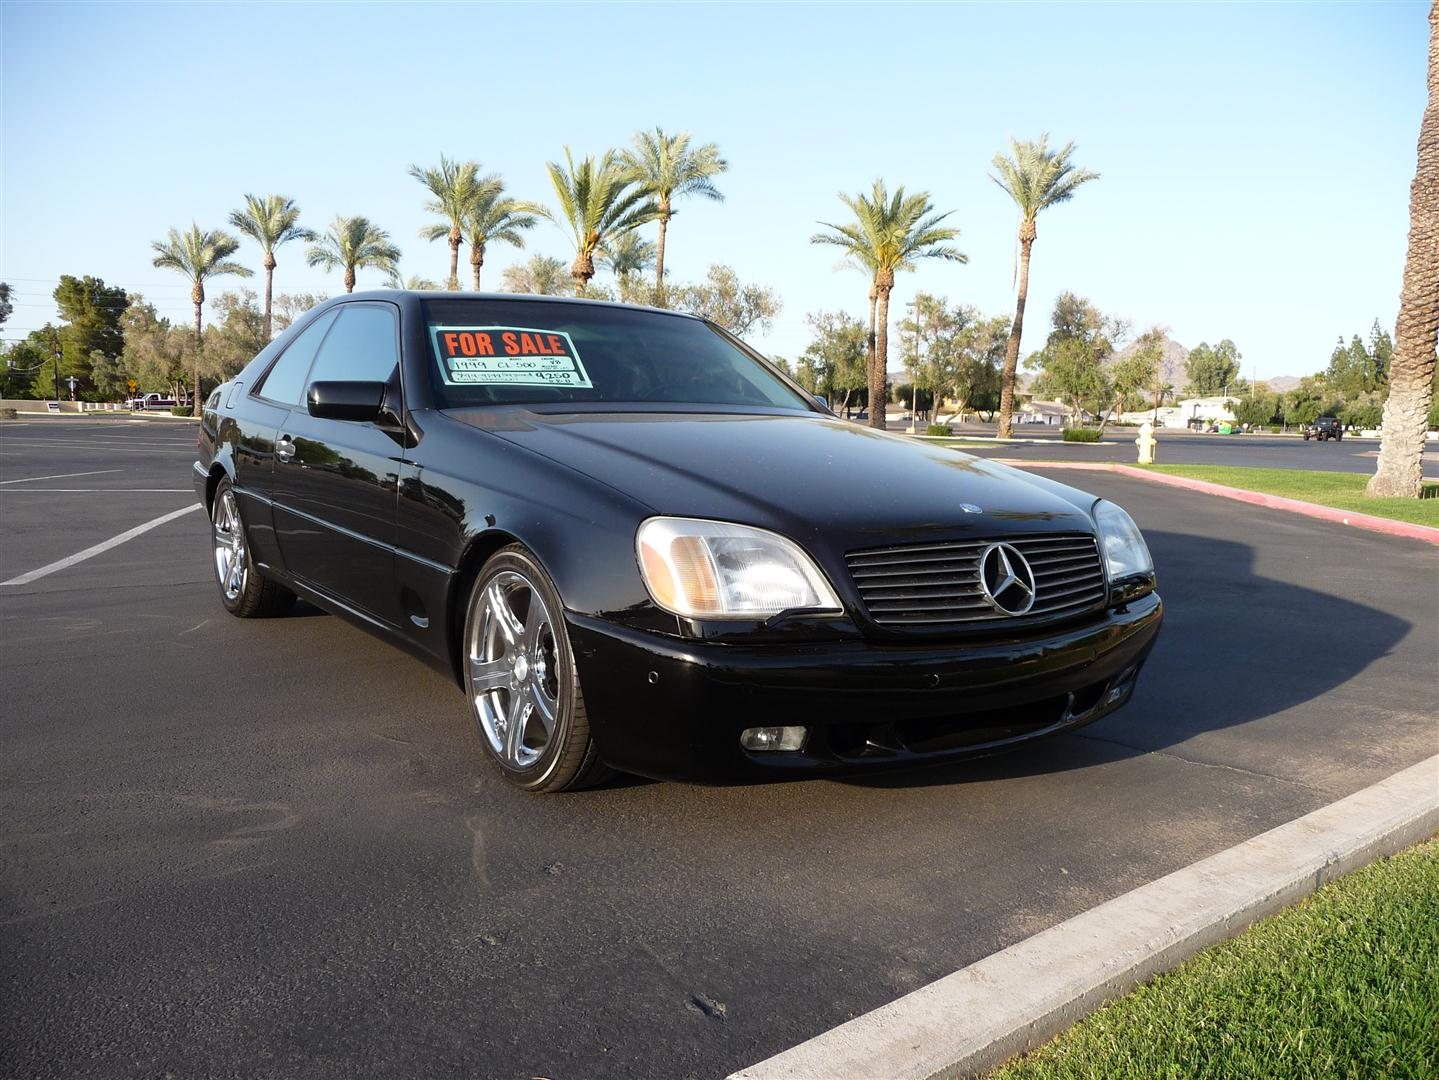 Fs 1999 cl 500 9250 obo mercedes benz forum for 1999 mercedes benz cl500 for sale